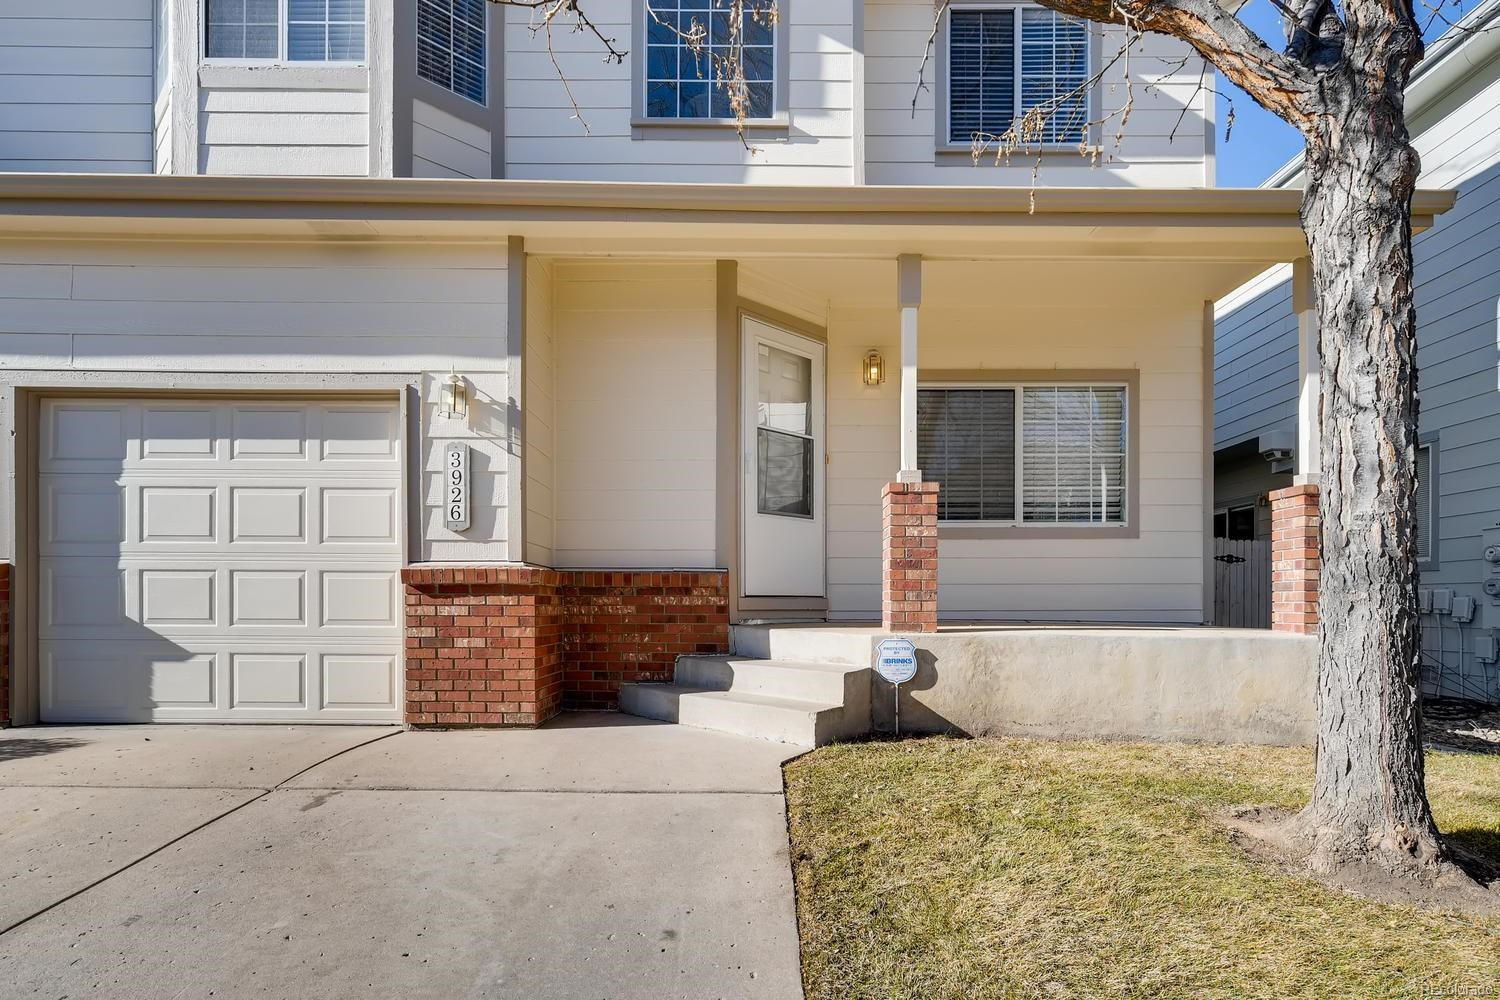 MLS# 7435178 - 3 - 3926 Christy Heights, Colorado Springs, CO 80906